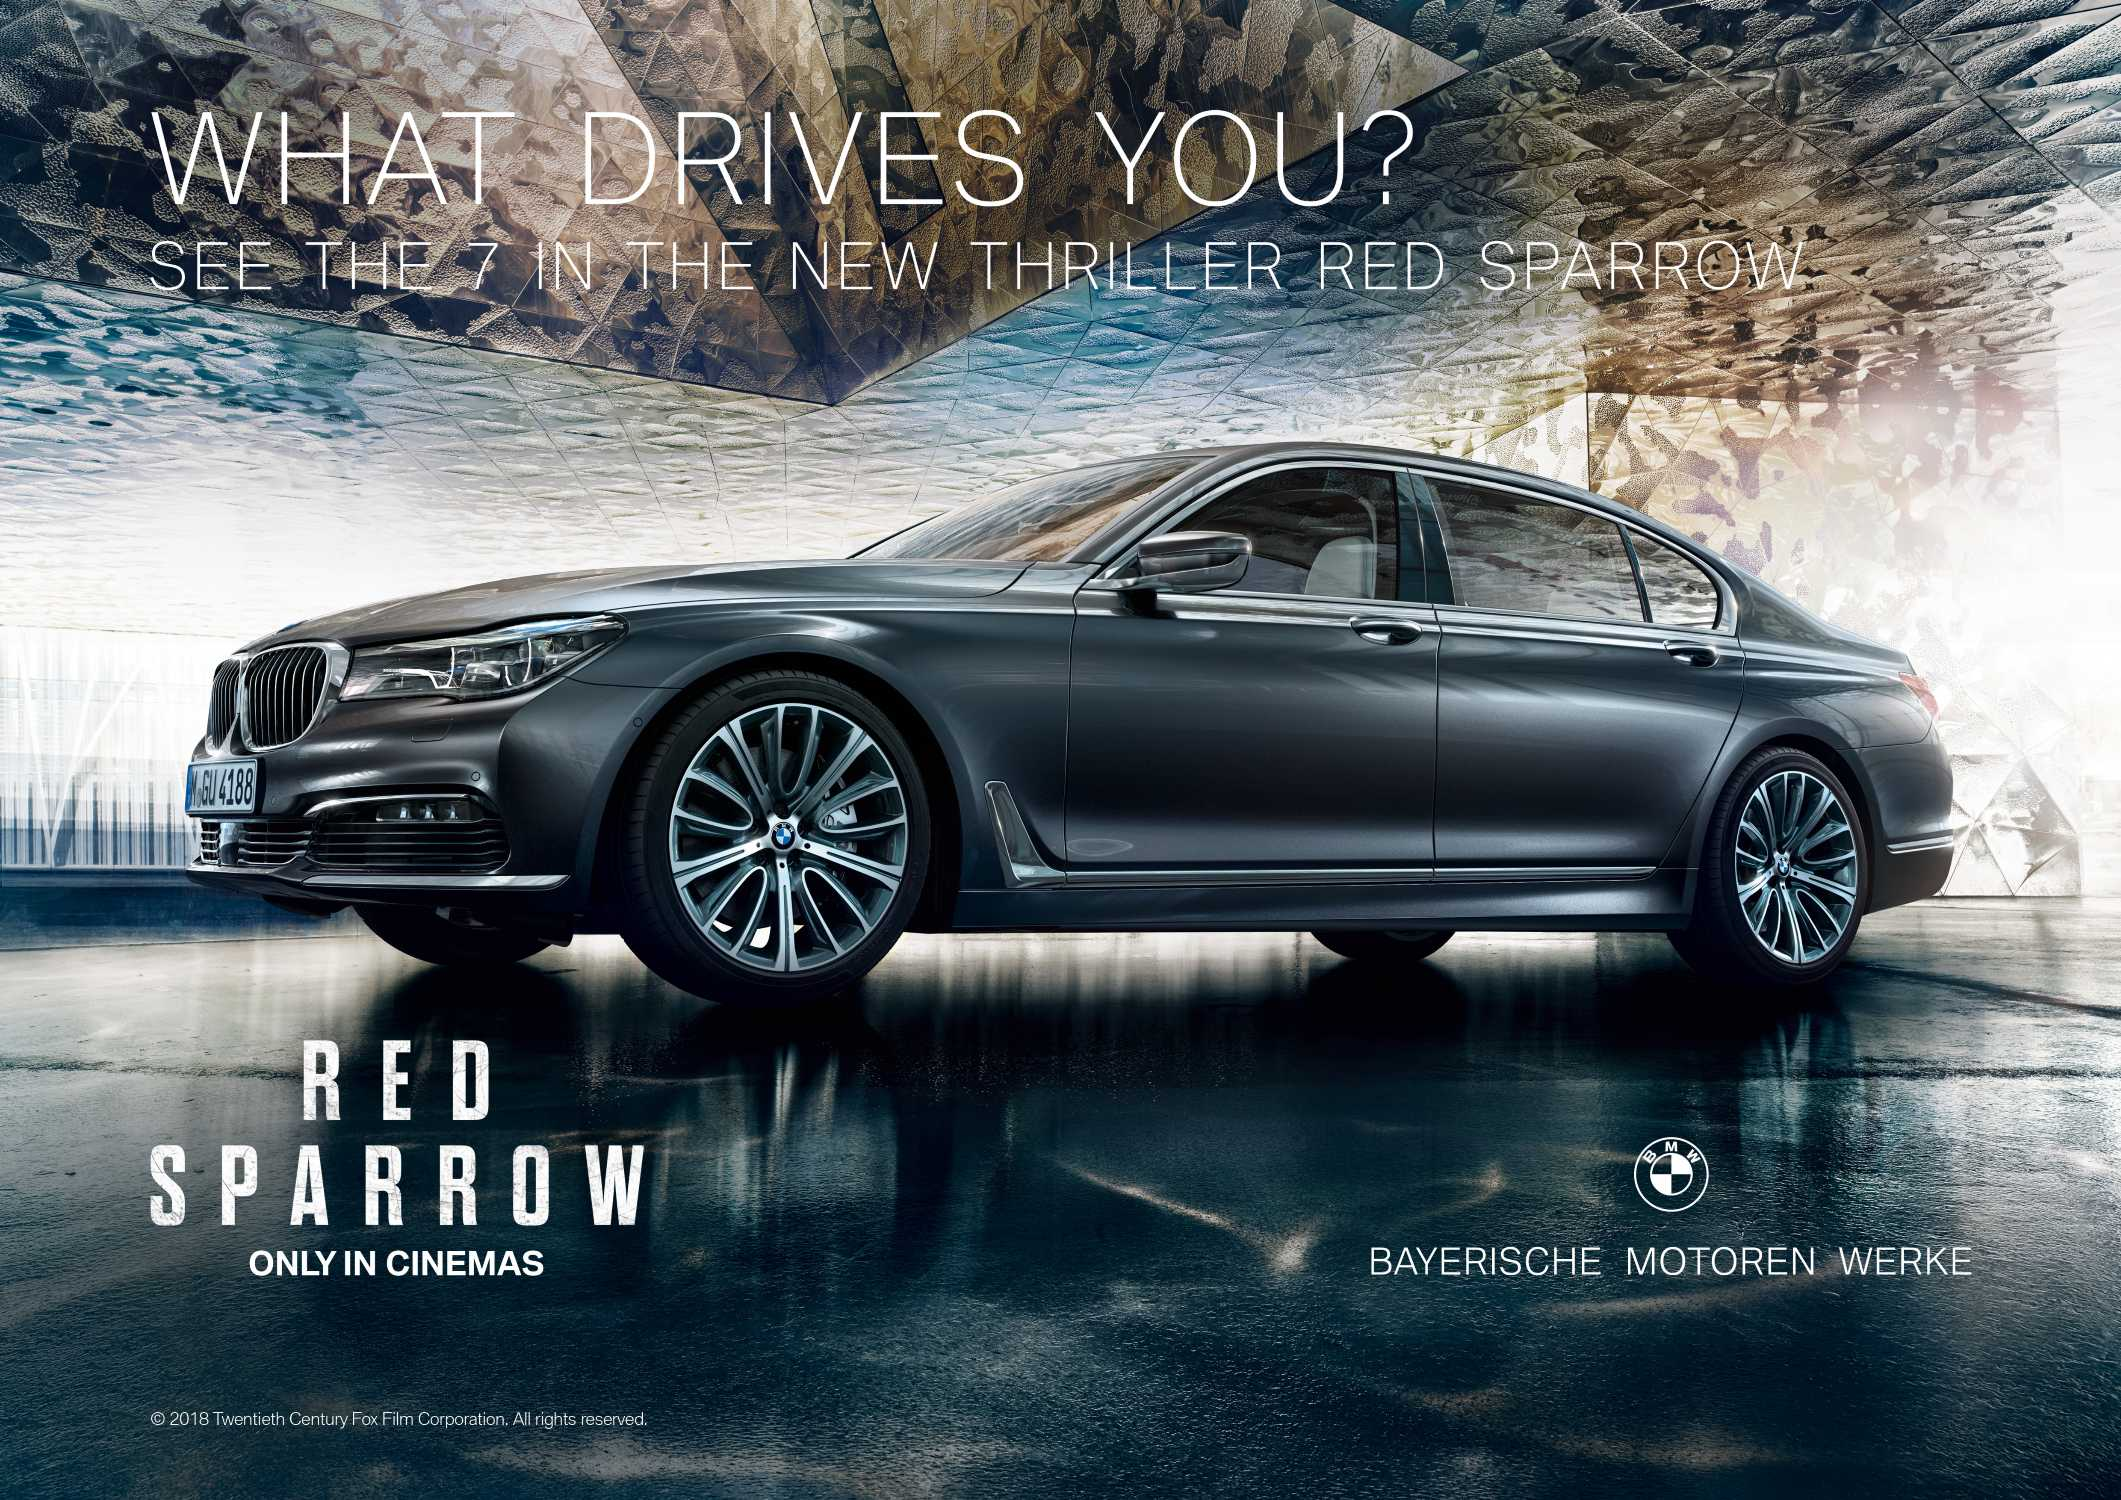 The BMW 7 Series in Red Sparrow starring Jennifer Lawrence as Dominika Egorova. (02/2018)